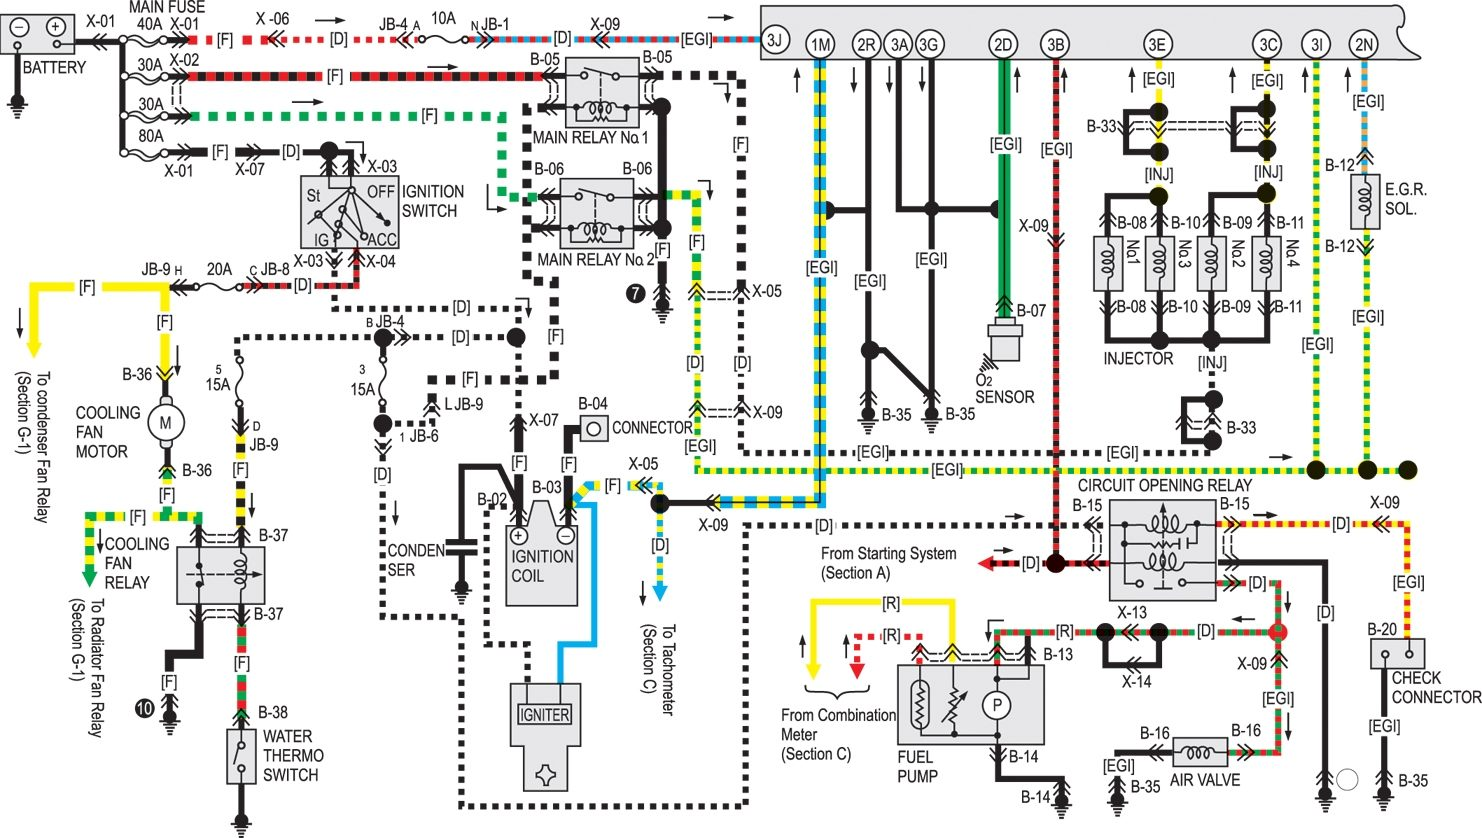 Mazda 3 wiring diagram pdf mazda 3 engine diagram wiring diagrams mazda car manuals wiring diagrams pdf fault codes 2007 mazda 3 wiring diagram pdf cheapraybanclubmaster Image collections